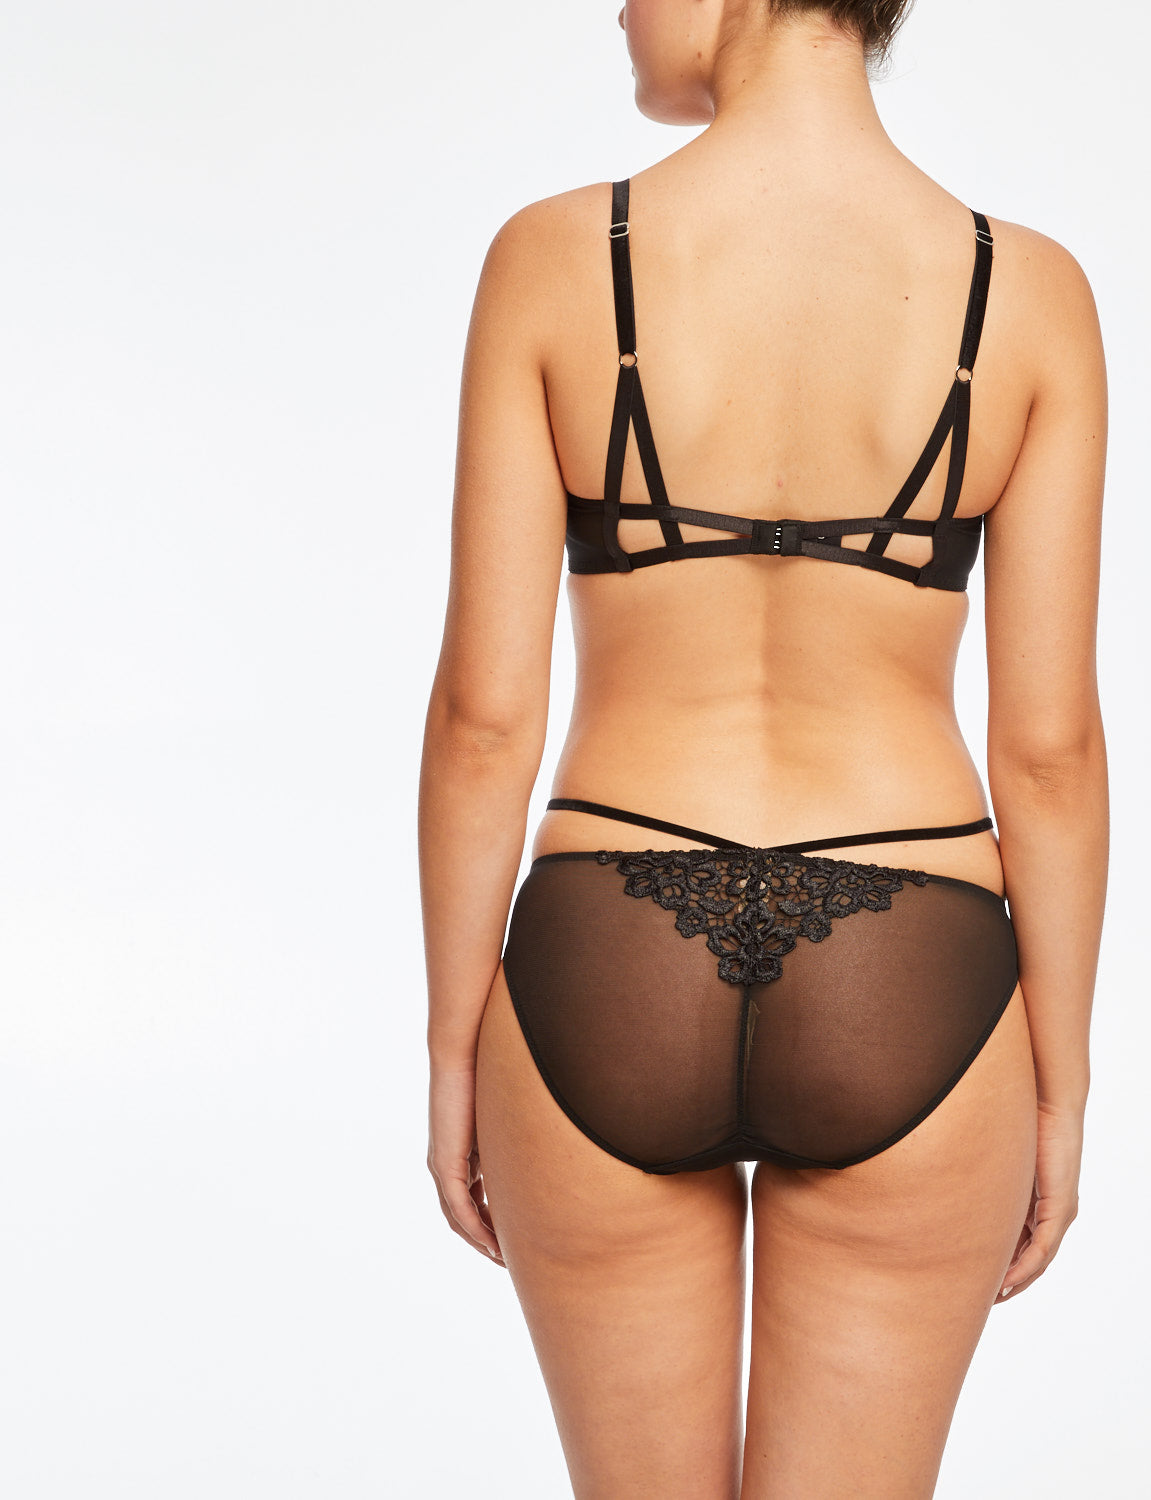 Dita Von Teese Dahlia Bikini Brief Black - size XL only!